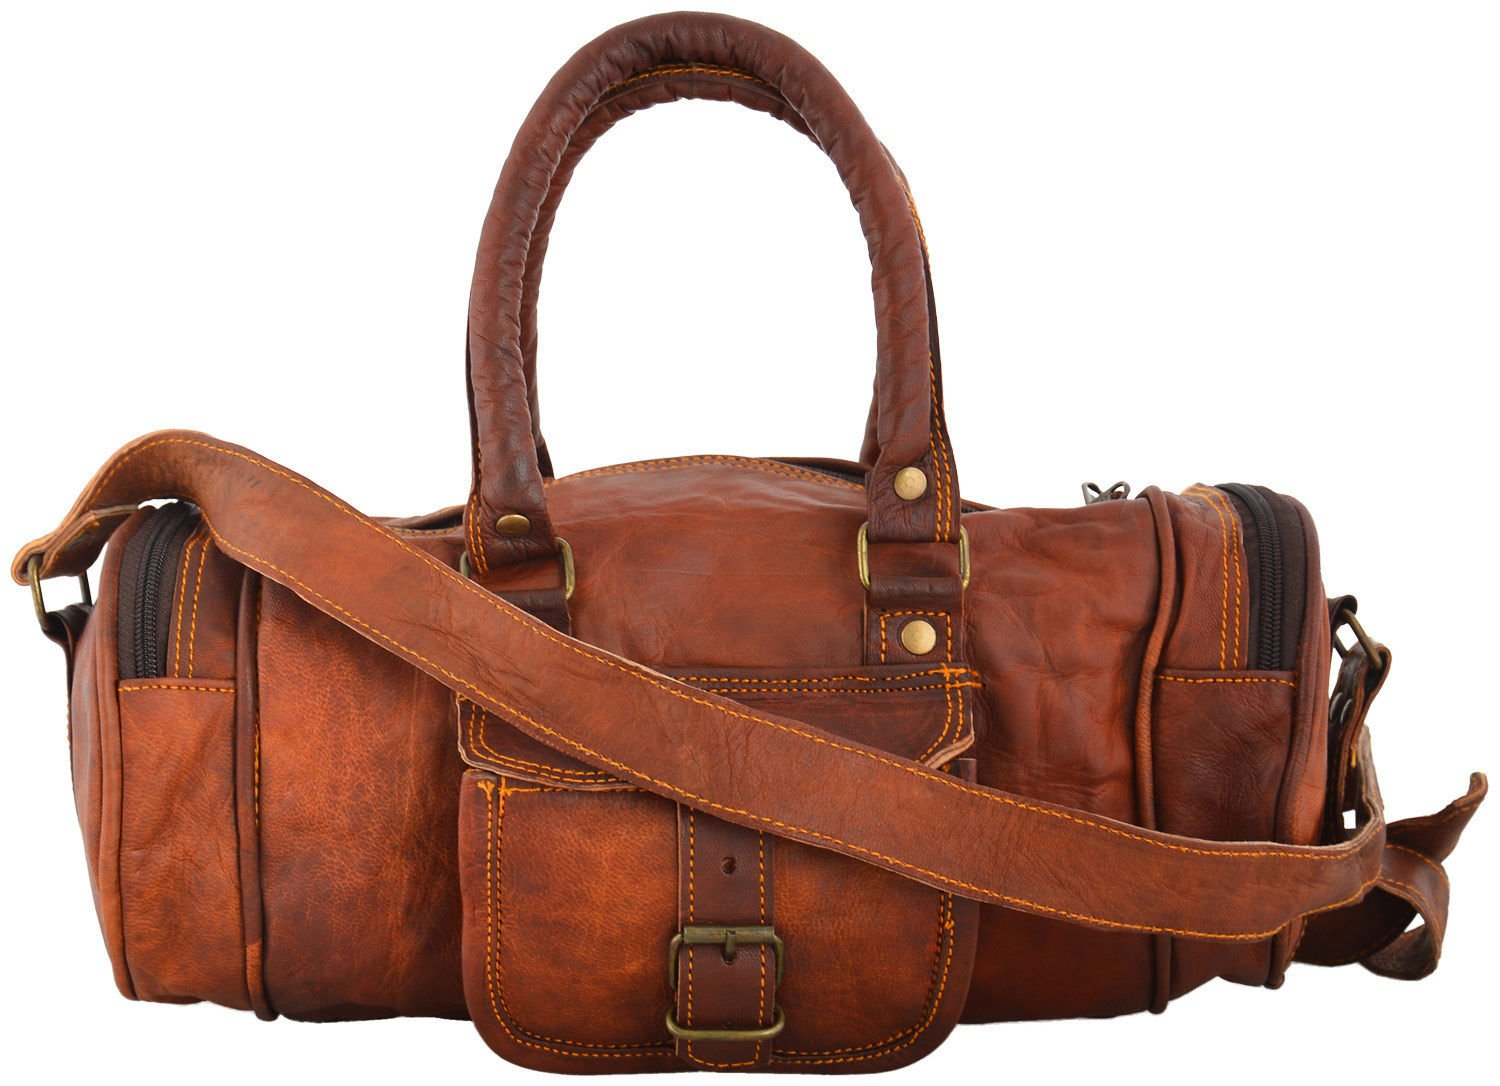 Thehandicraftworld vintage leather messenger brown goat hide luggage travel bag genuine briefcase